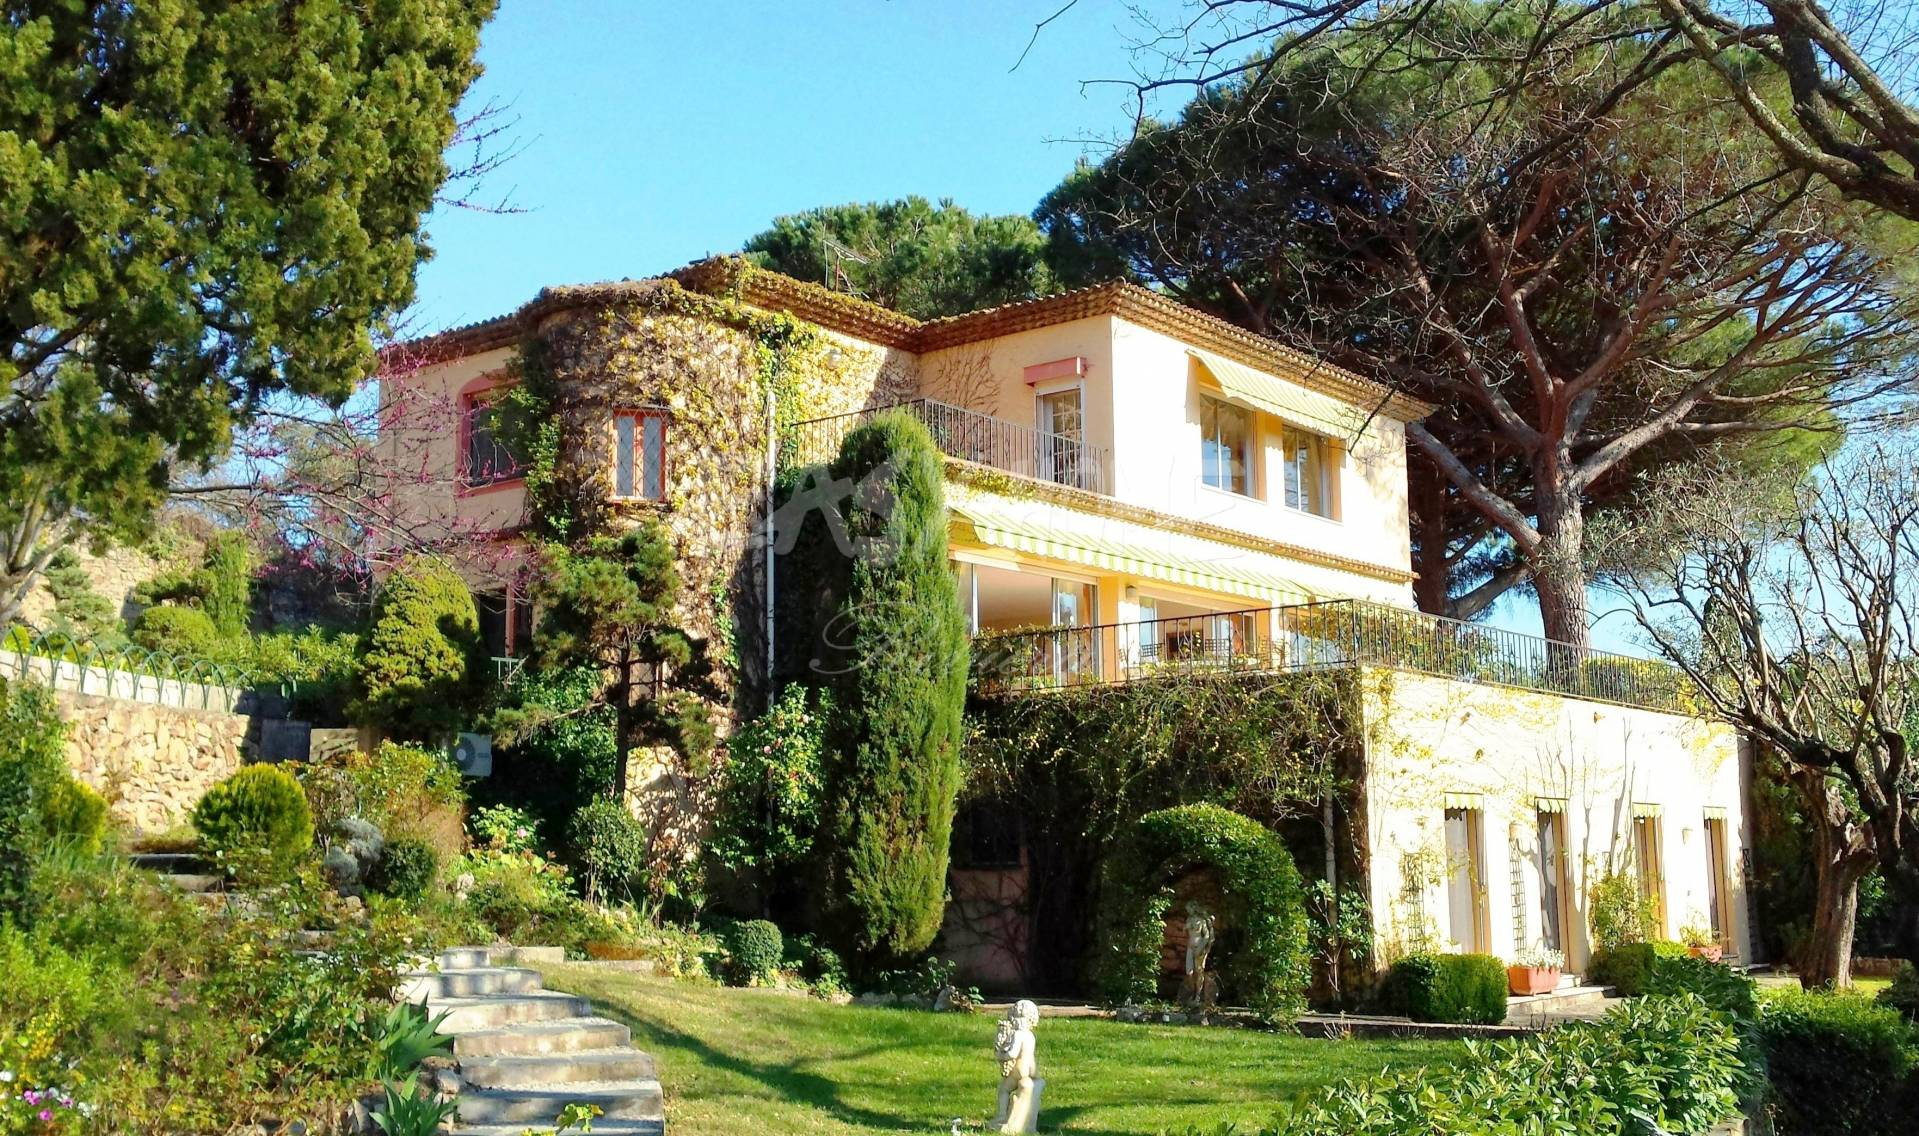 Purchase / sale Villa close to Cannes Côte d'Azur